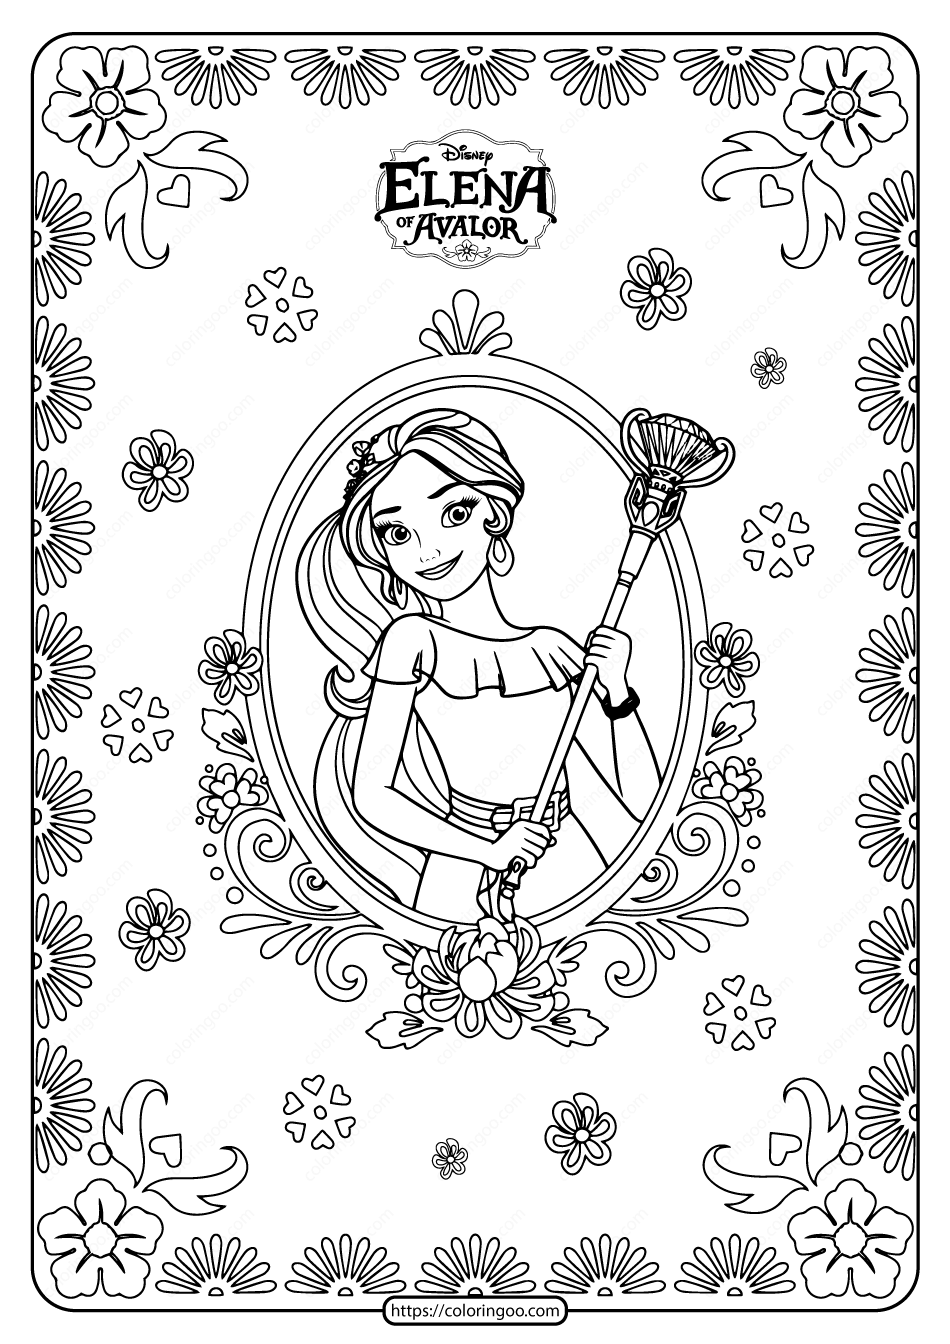 Printable Princess Elena Of Avalor Coloring Pages